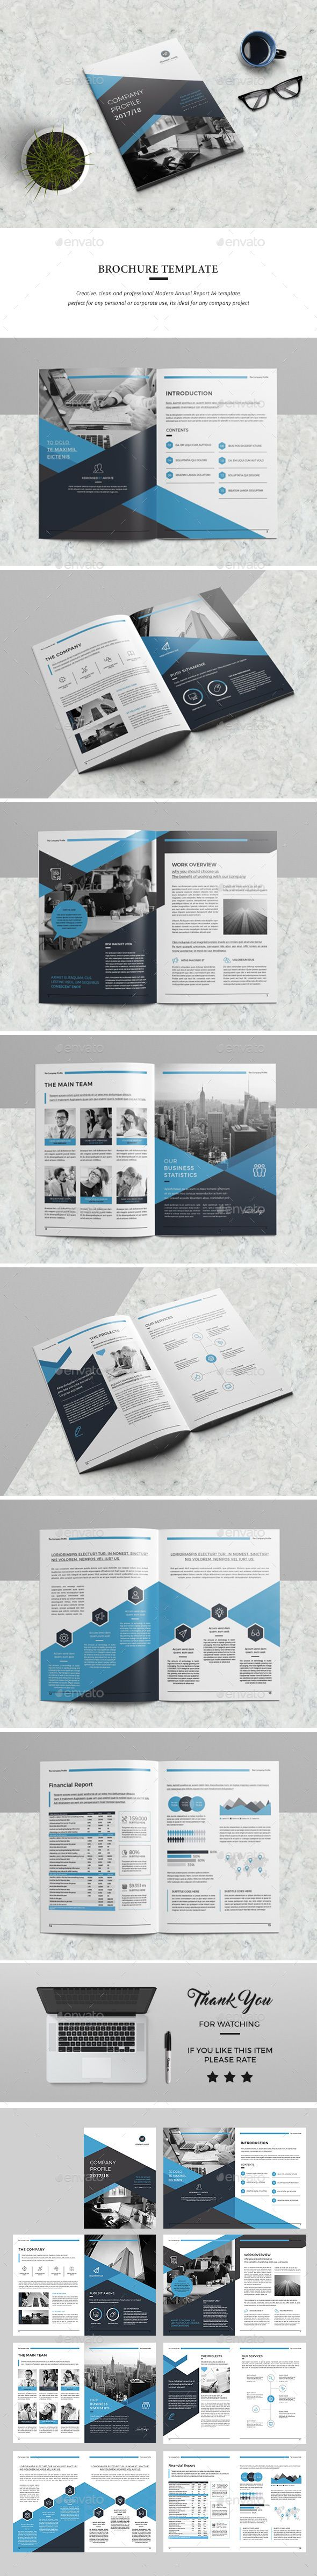 Annual Report Template InDesign INDD - 16 Pages